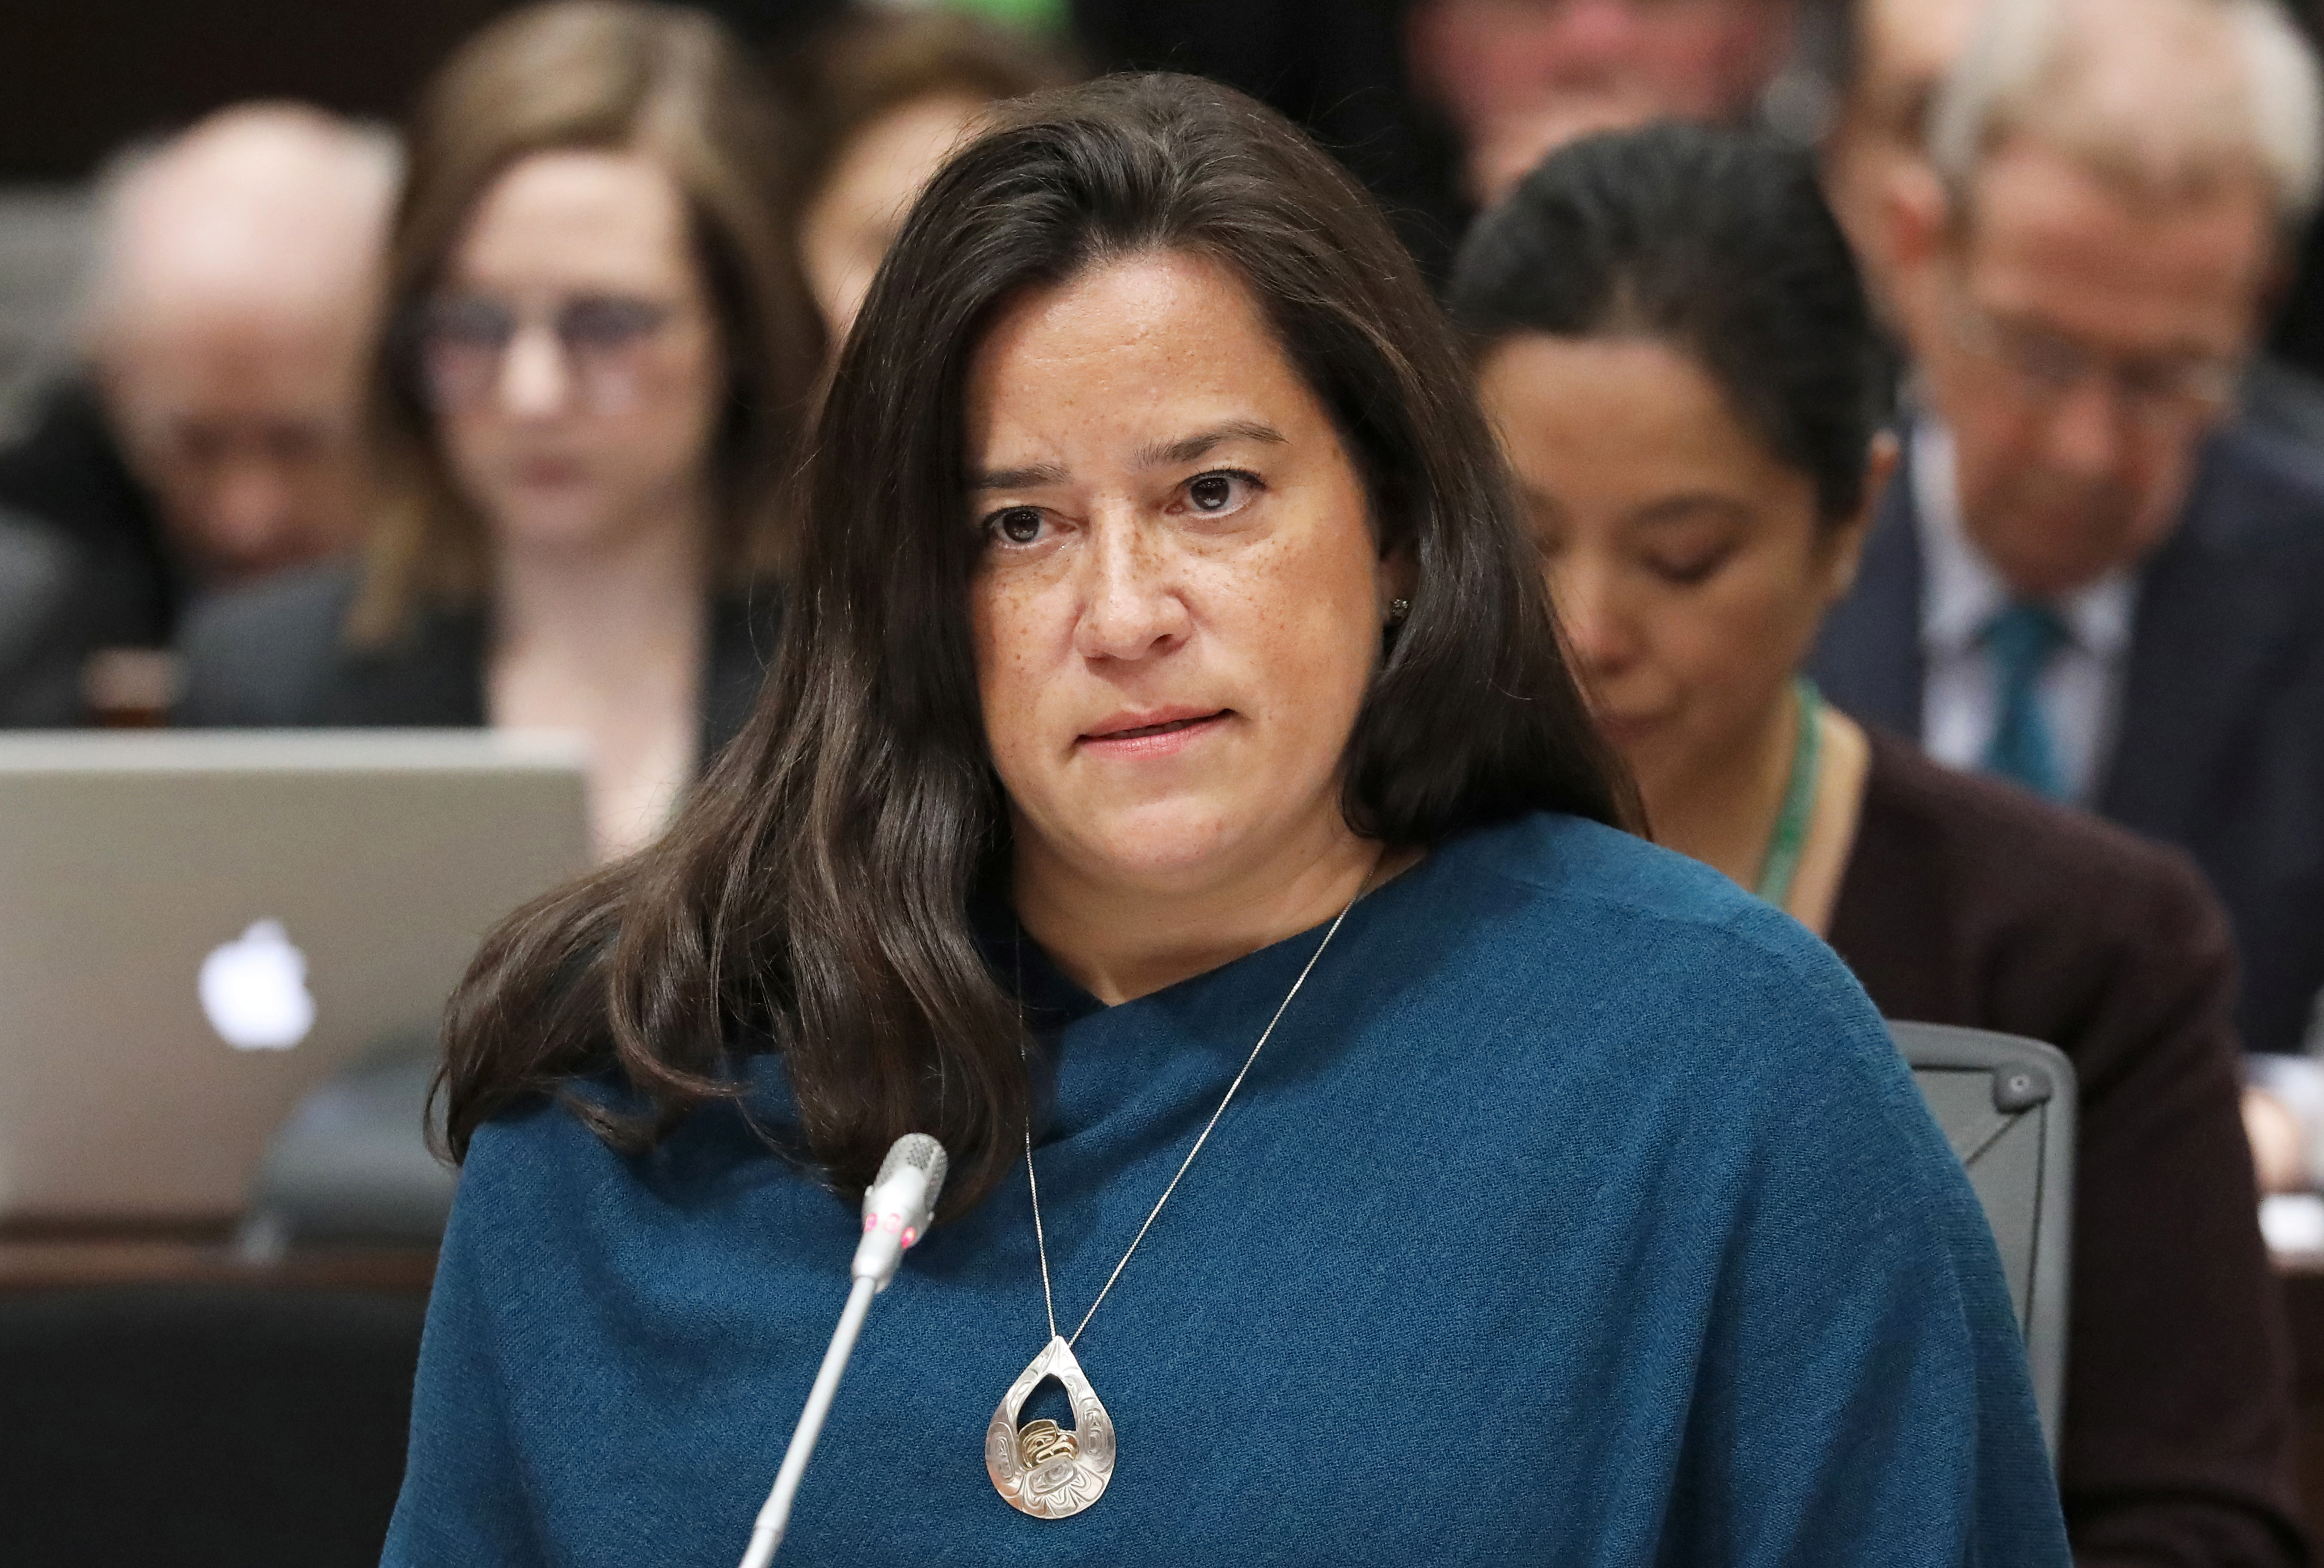 Liberal MP and former Canadian justice minister Jody Wilson-Raybould testifies before the House of Commons justice committee on Parliament Hill in Ottawa, Ontario, Canada, February 27, 2019. REUTERS/Chris Wattie